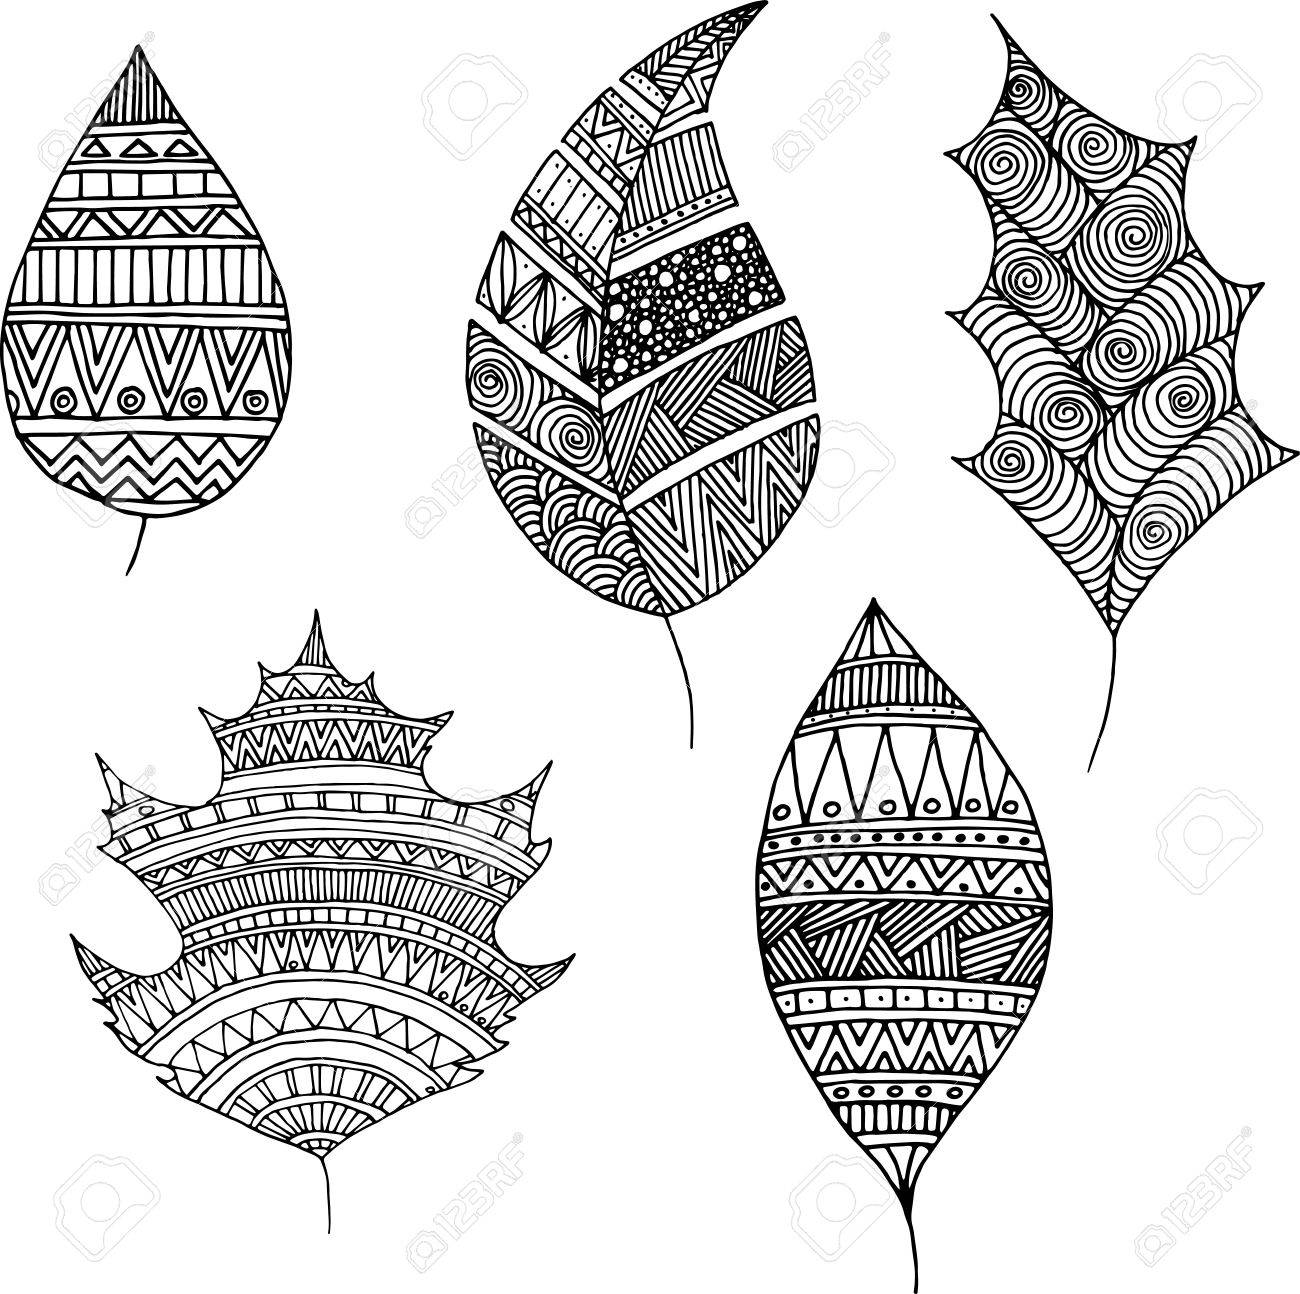 Collection Autumn Leaves Doodle Style Royalty Free Cliparts Vectors And Stock Illustration Image 45883180